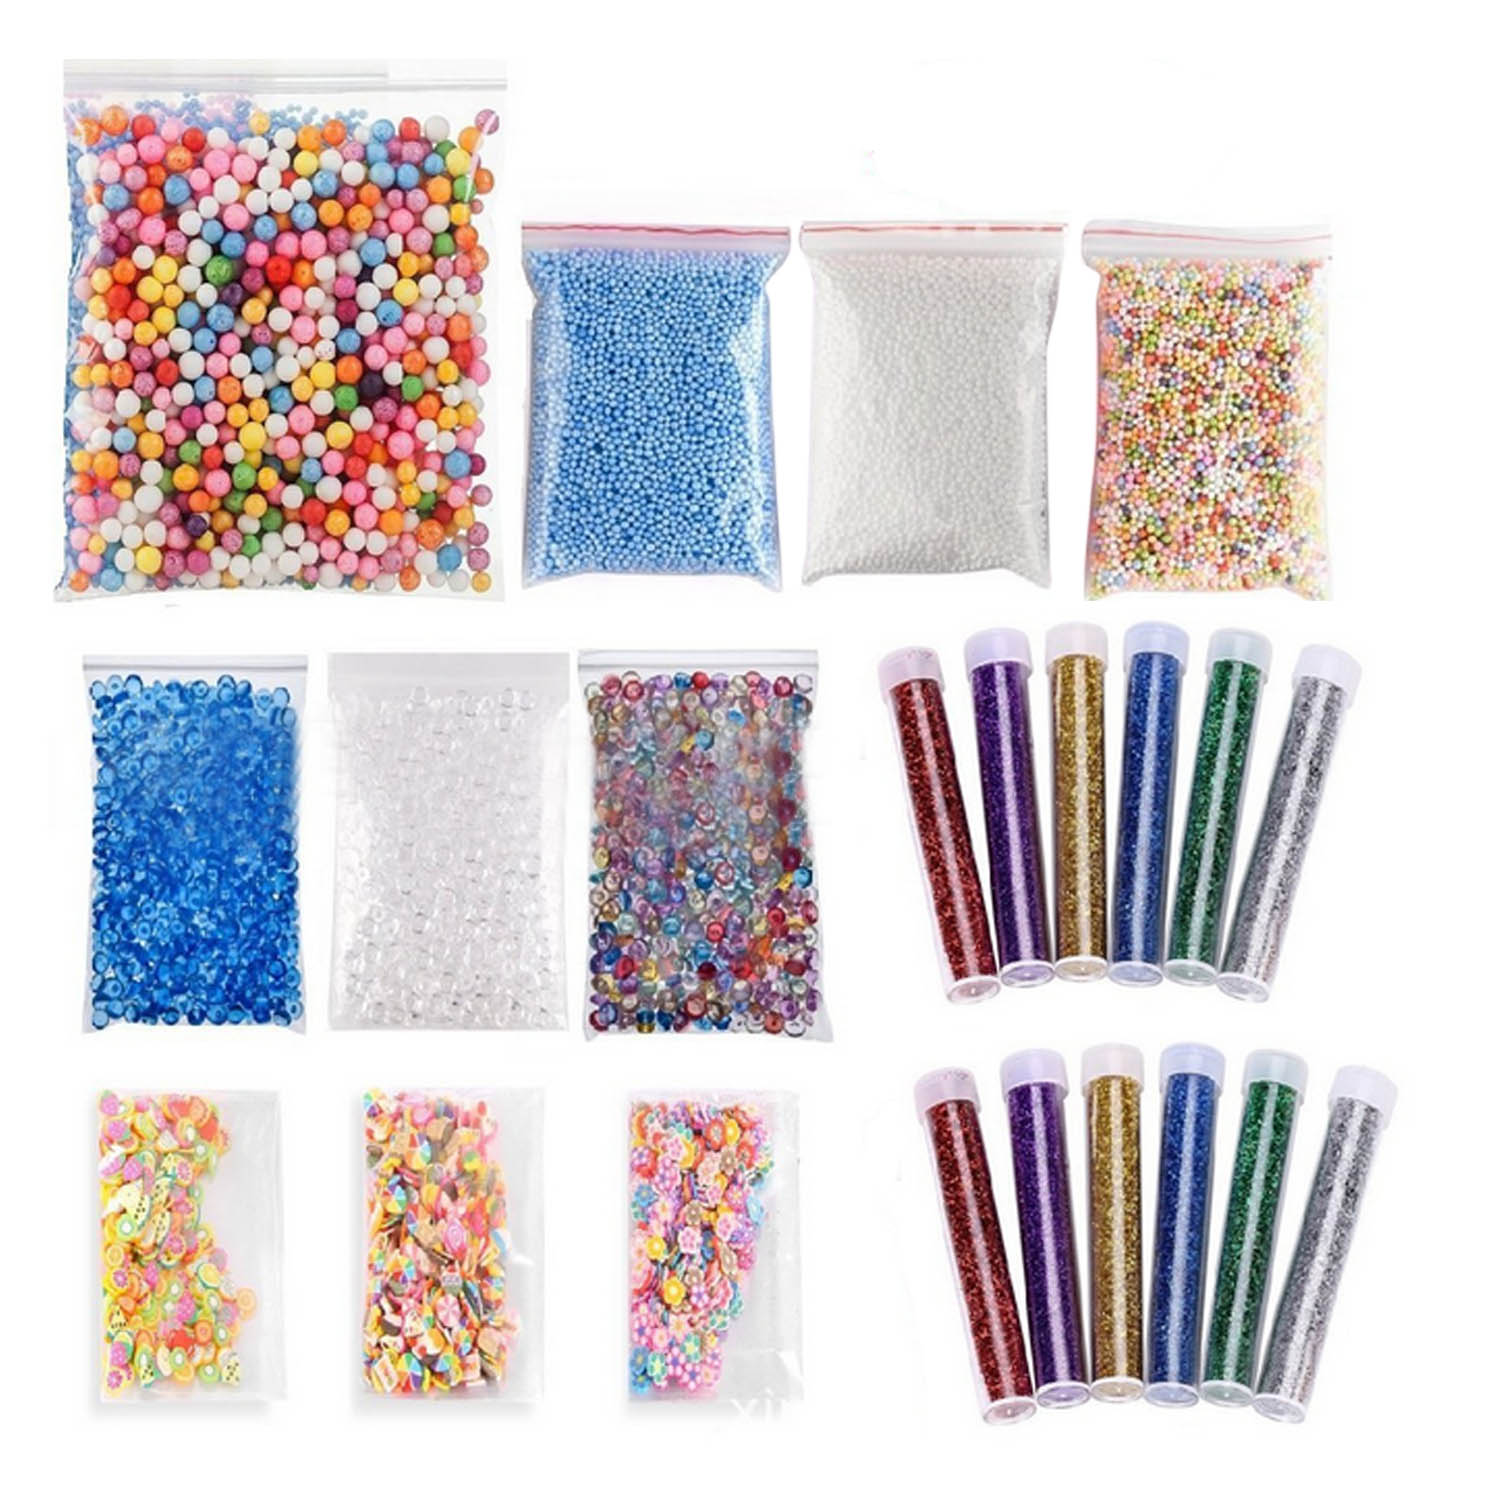 Modeling Clay Practical 1 Pack Slime Balls Small Tiny Foam Beads For Foam Filler For Diy Supplies Diy Snow Mud Particles Accessories Durable Service